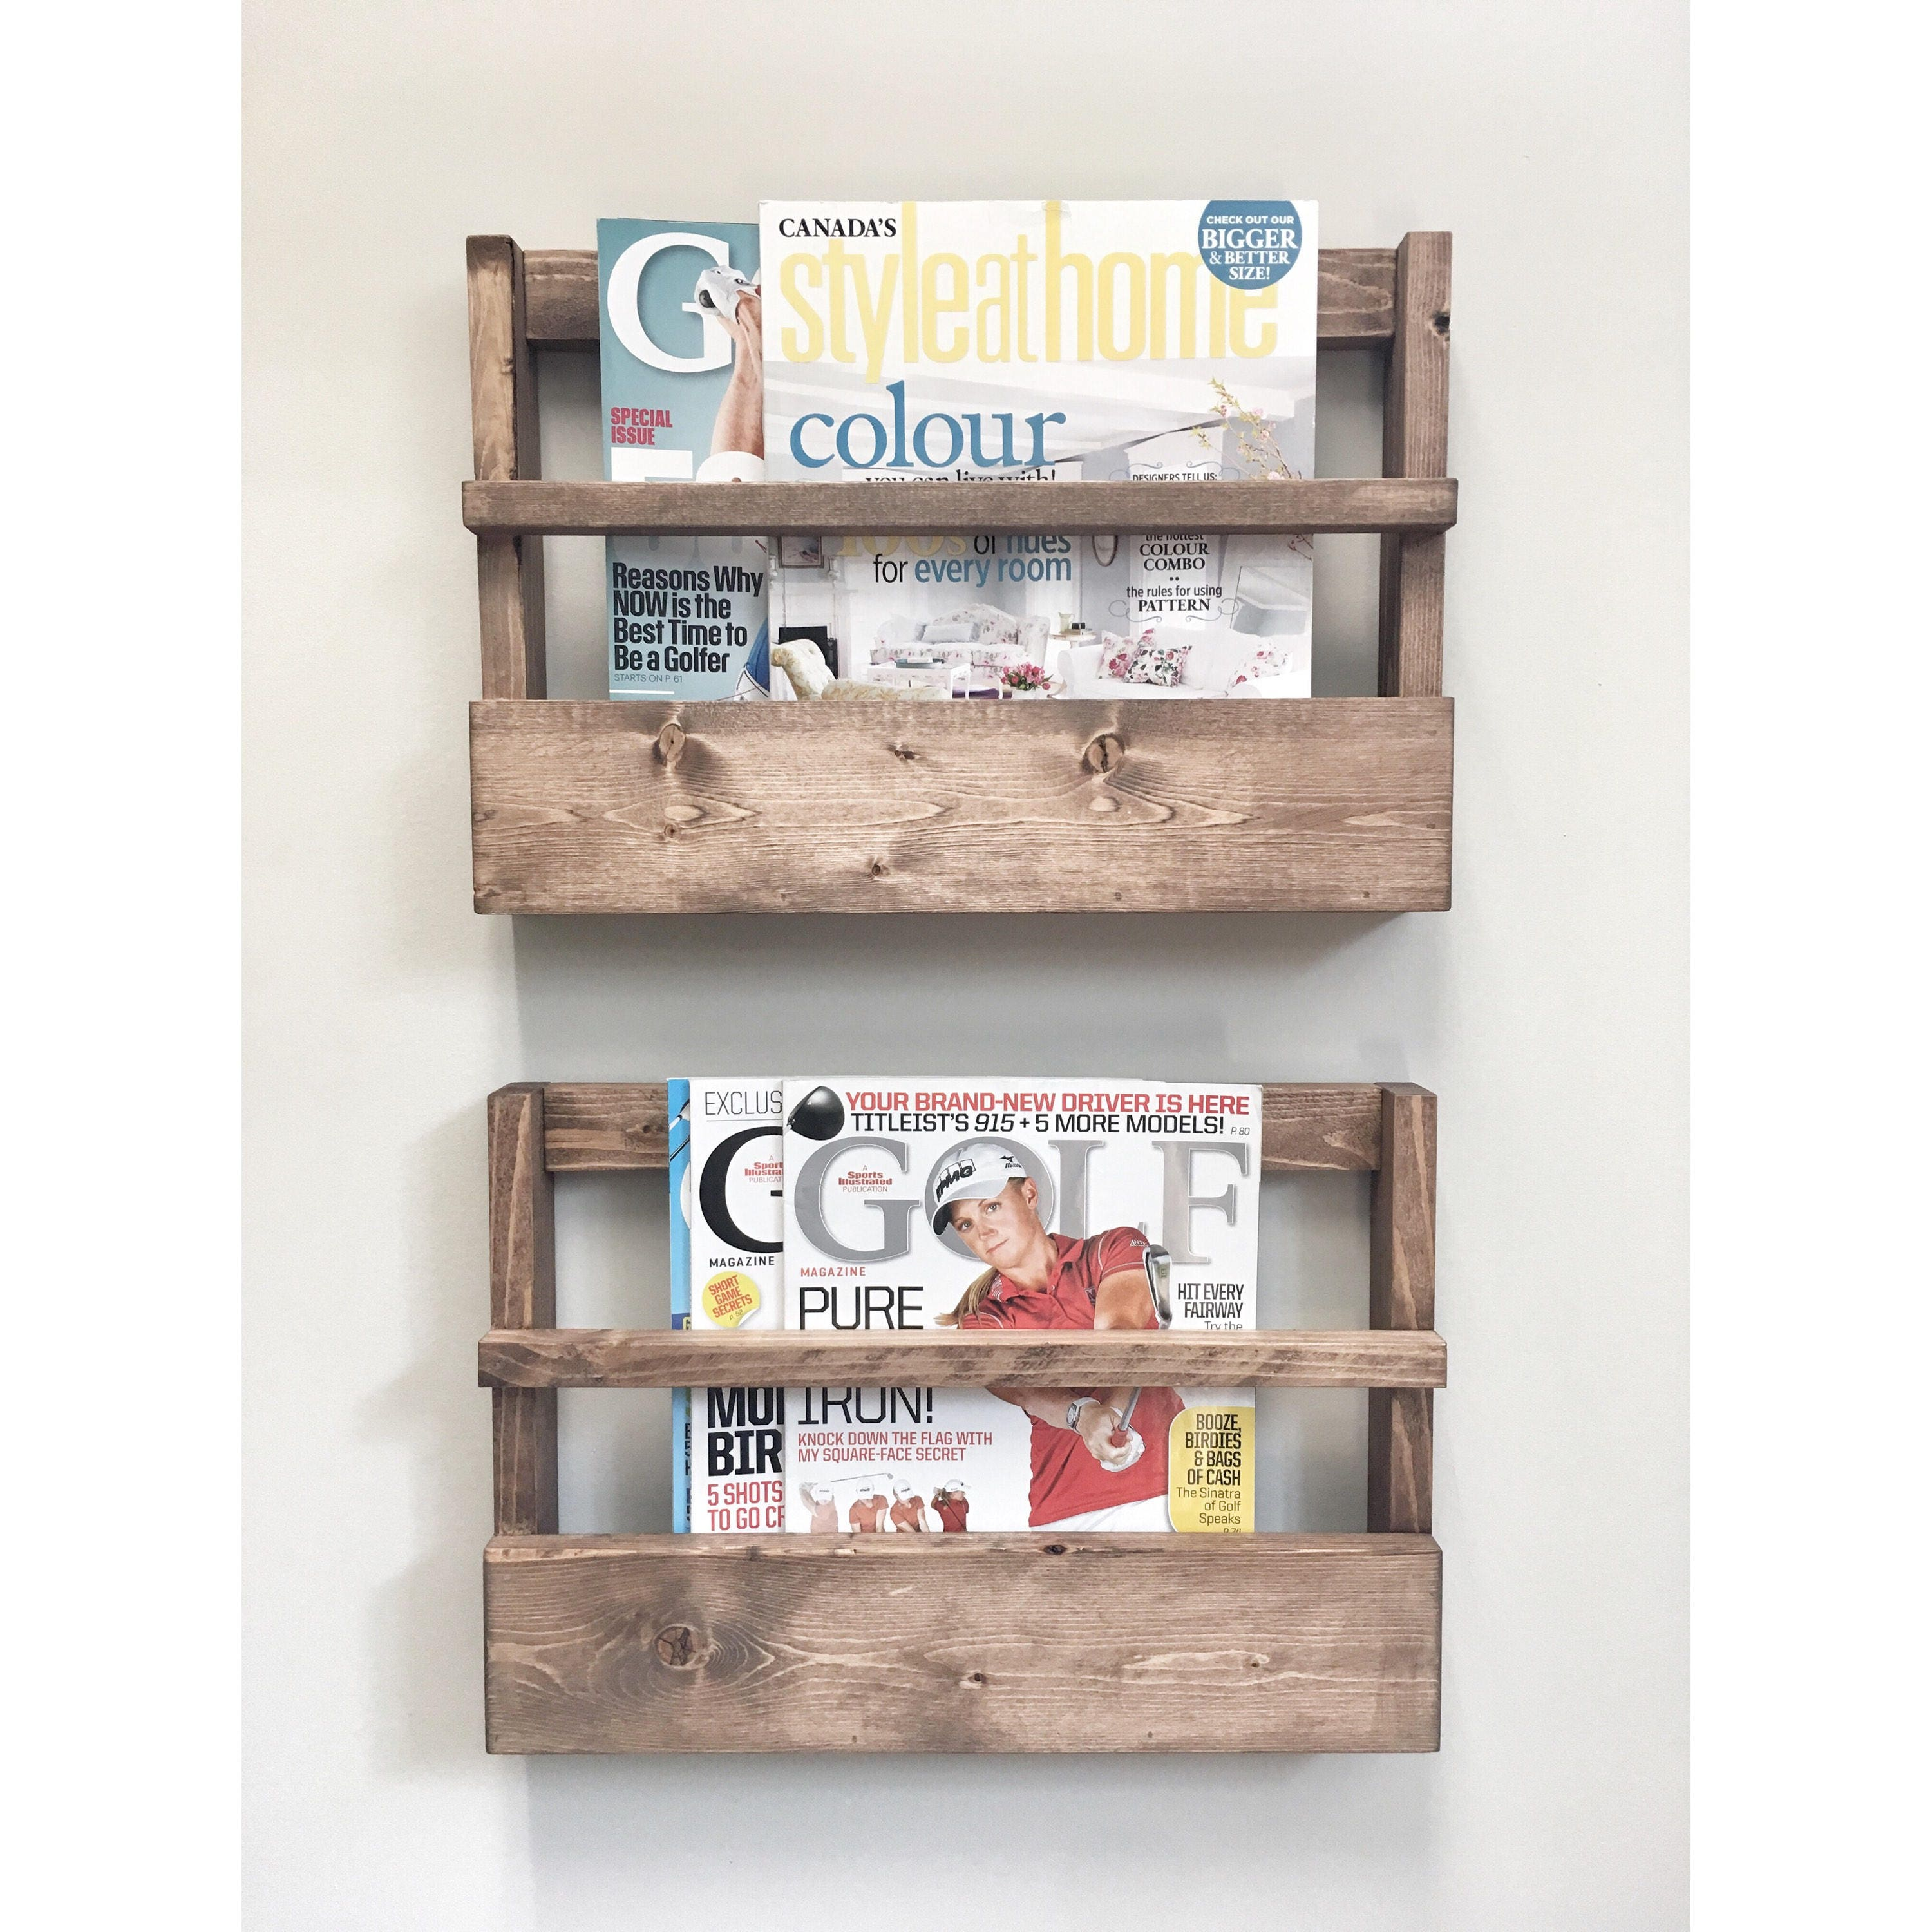 Rustic Wood Magazine Holder Magazine Storage Rack Wall Hanging Rustic Home Decor Rustic Furniture storage Newspaper Rack Office Storage  sc 1 st  Cherry Tree Gallery & Rustic Wood Magazine Holder Magazine Storage Rack Wall Hanging ...